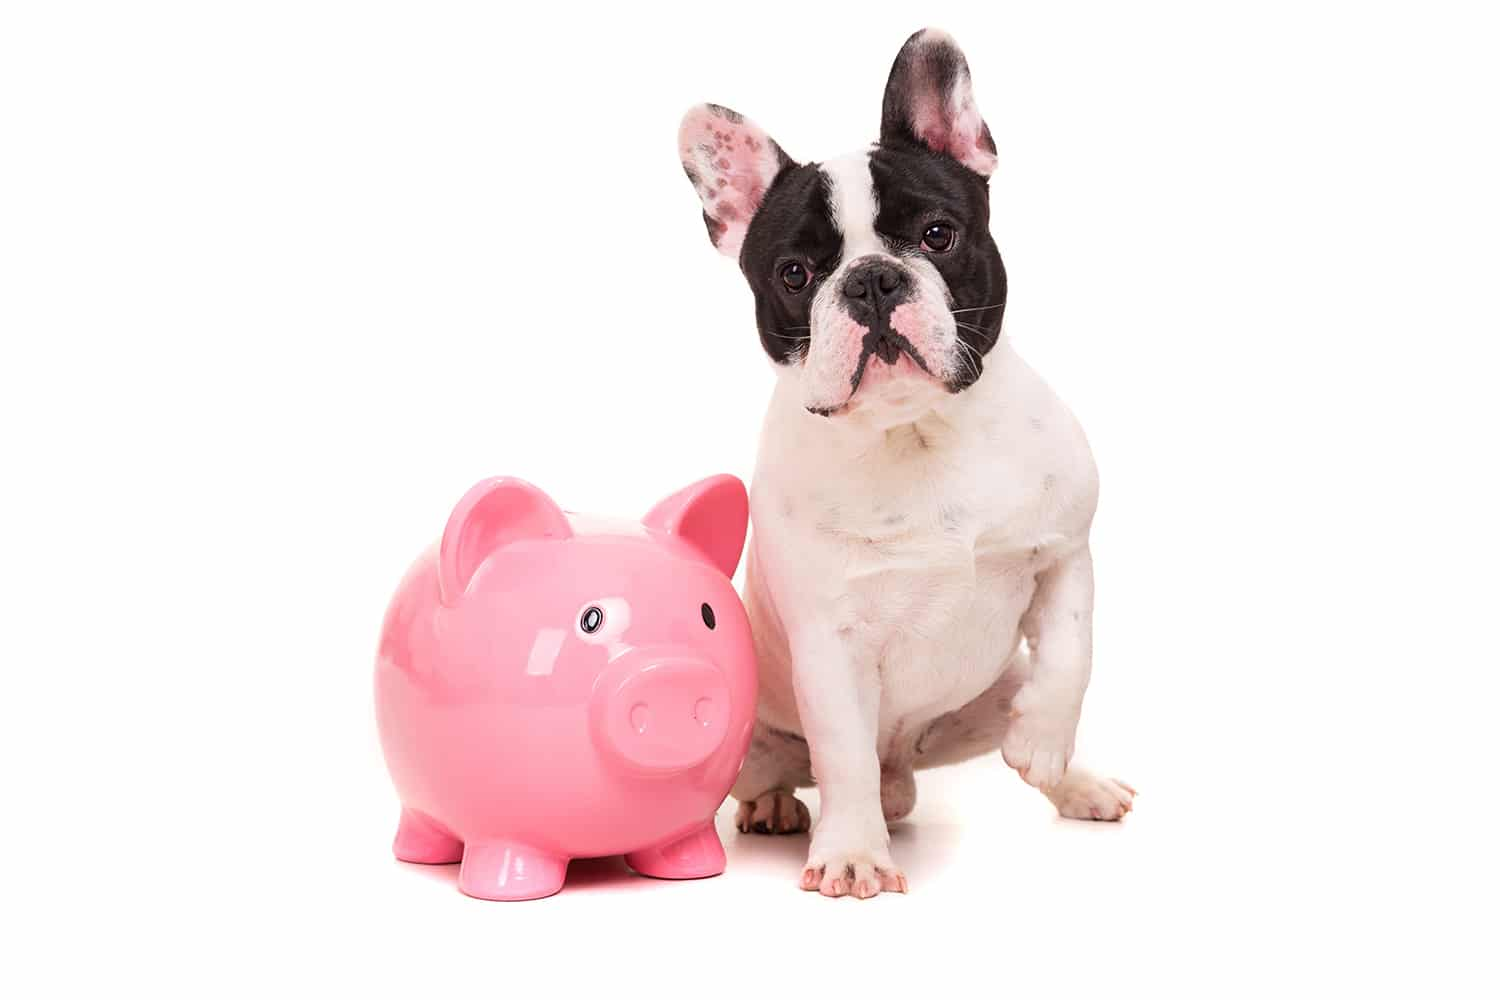 50% Deposit One-On-One Dog Training